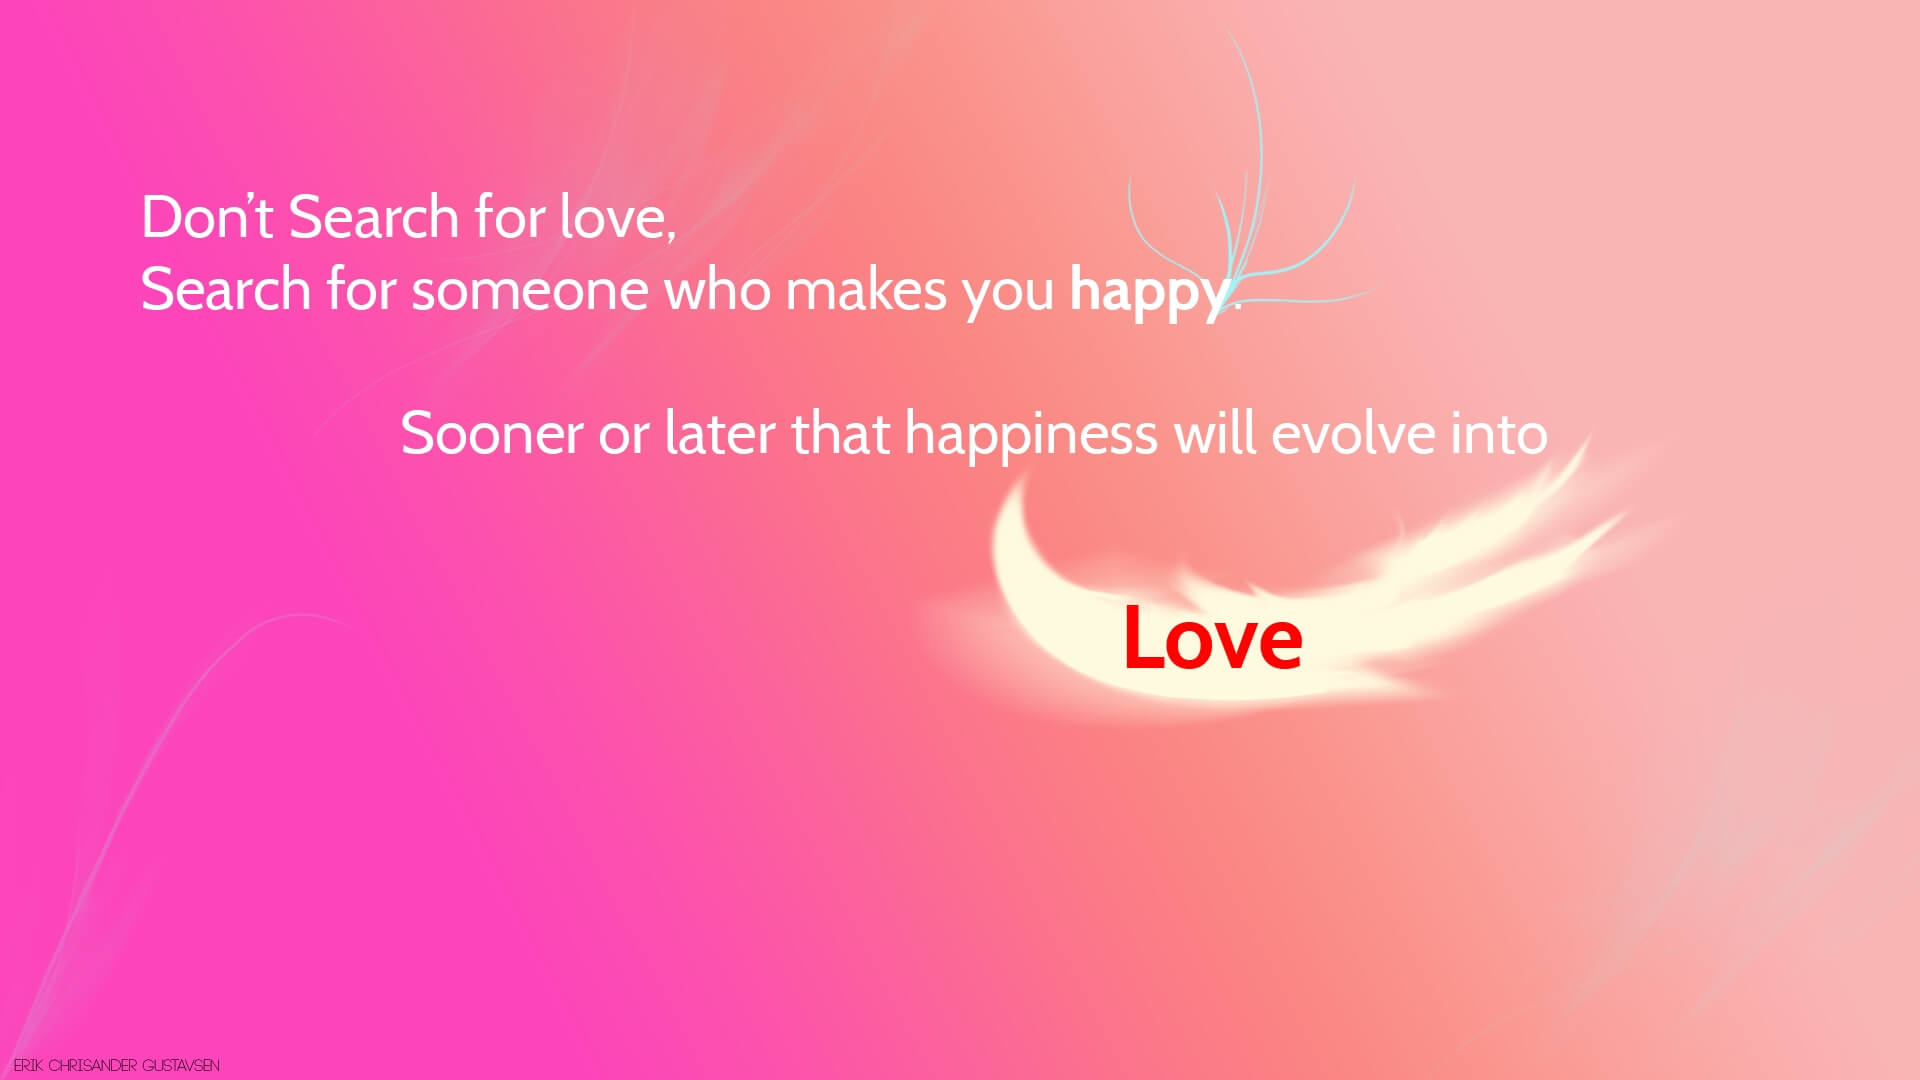 Love Quotes Wallpaper In English : Beautiful Love Quotes Hd Wallpapers Wallpaper sportstle